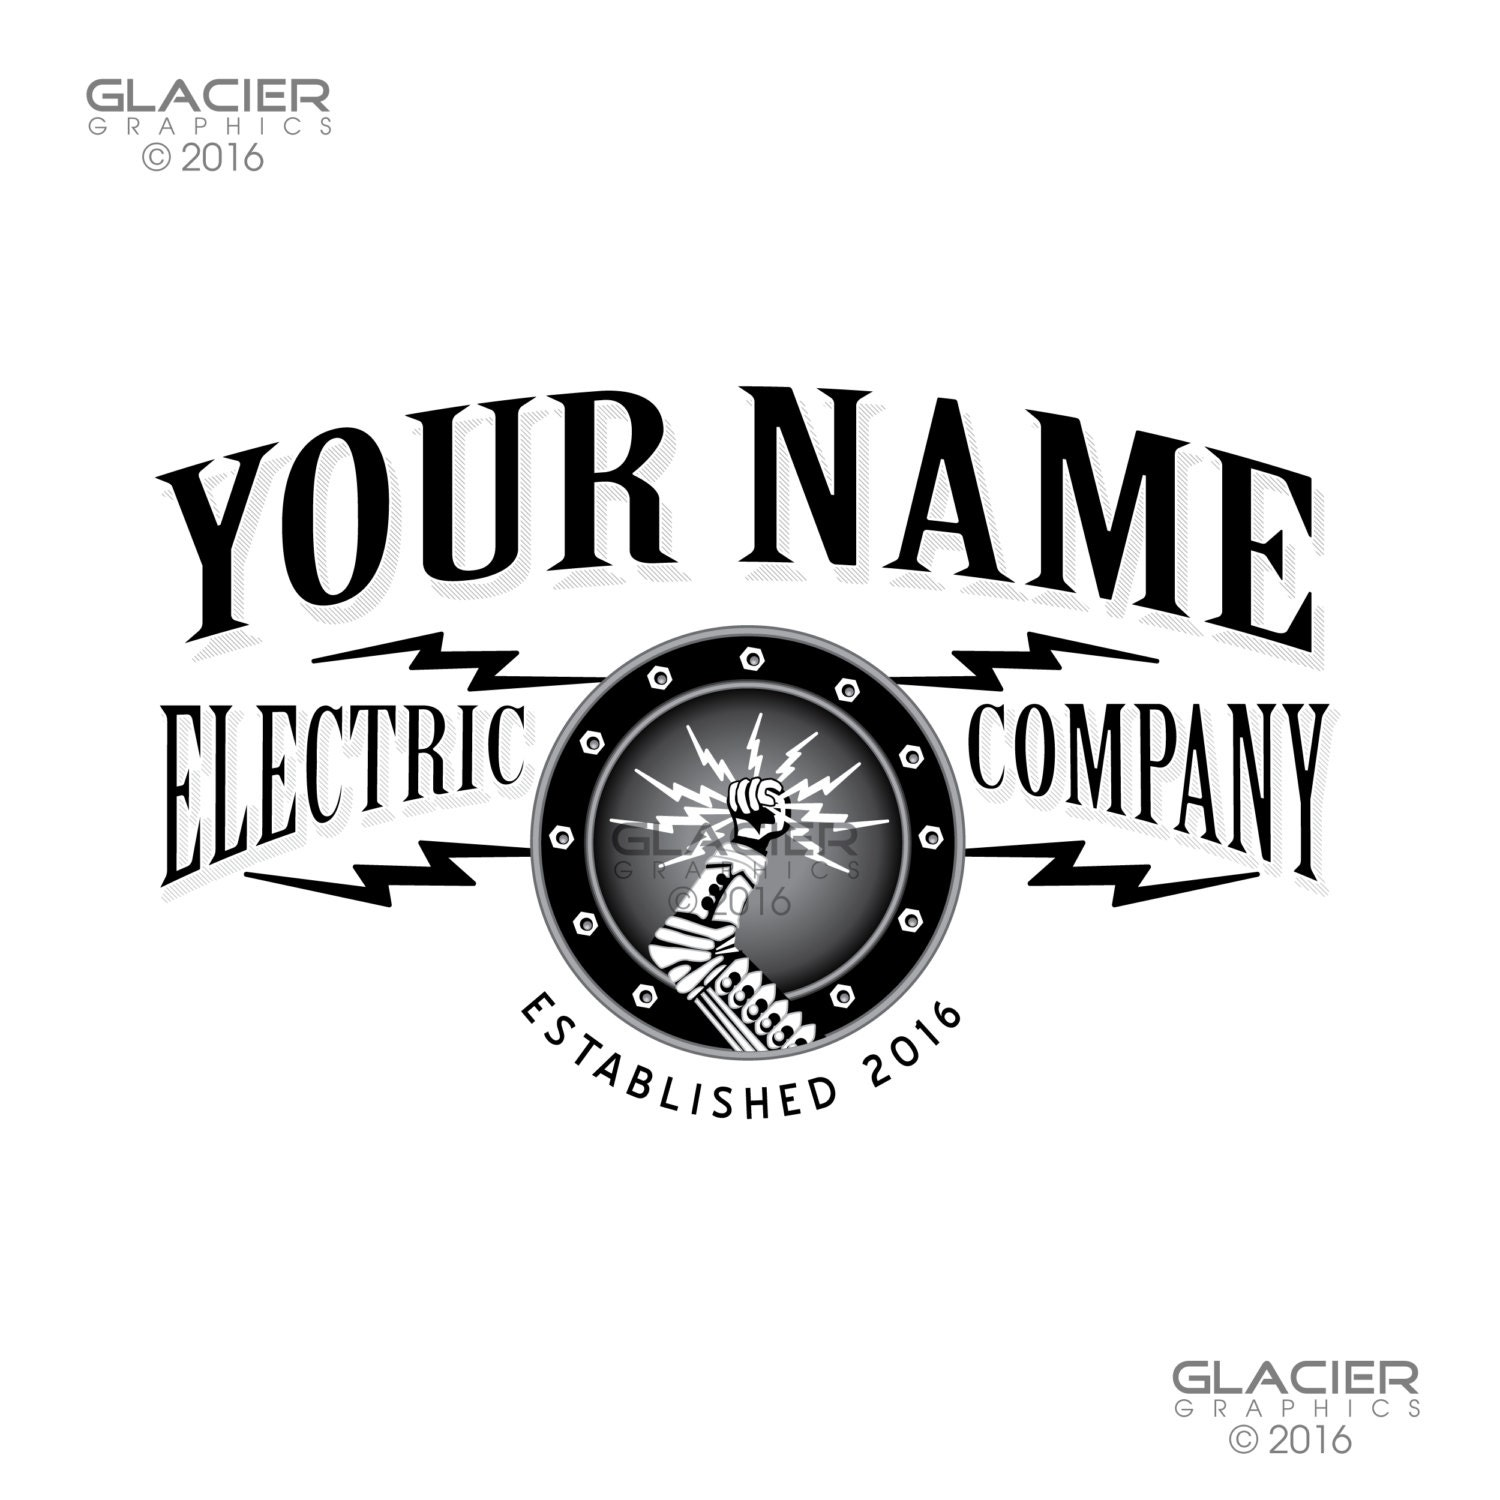 electrician logos steunk electrician logo electrical logo lighting logo 8426